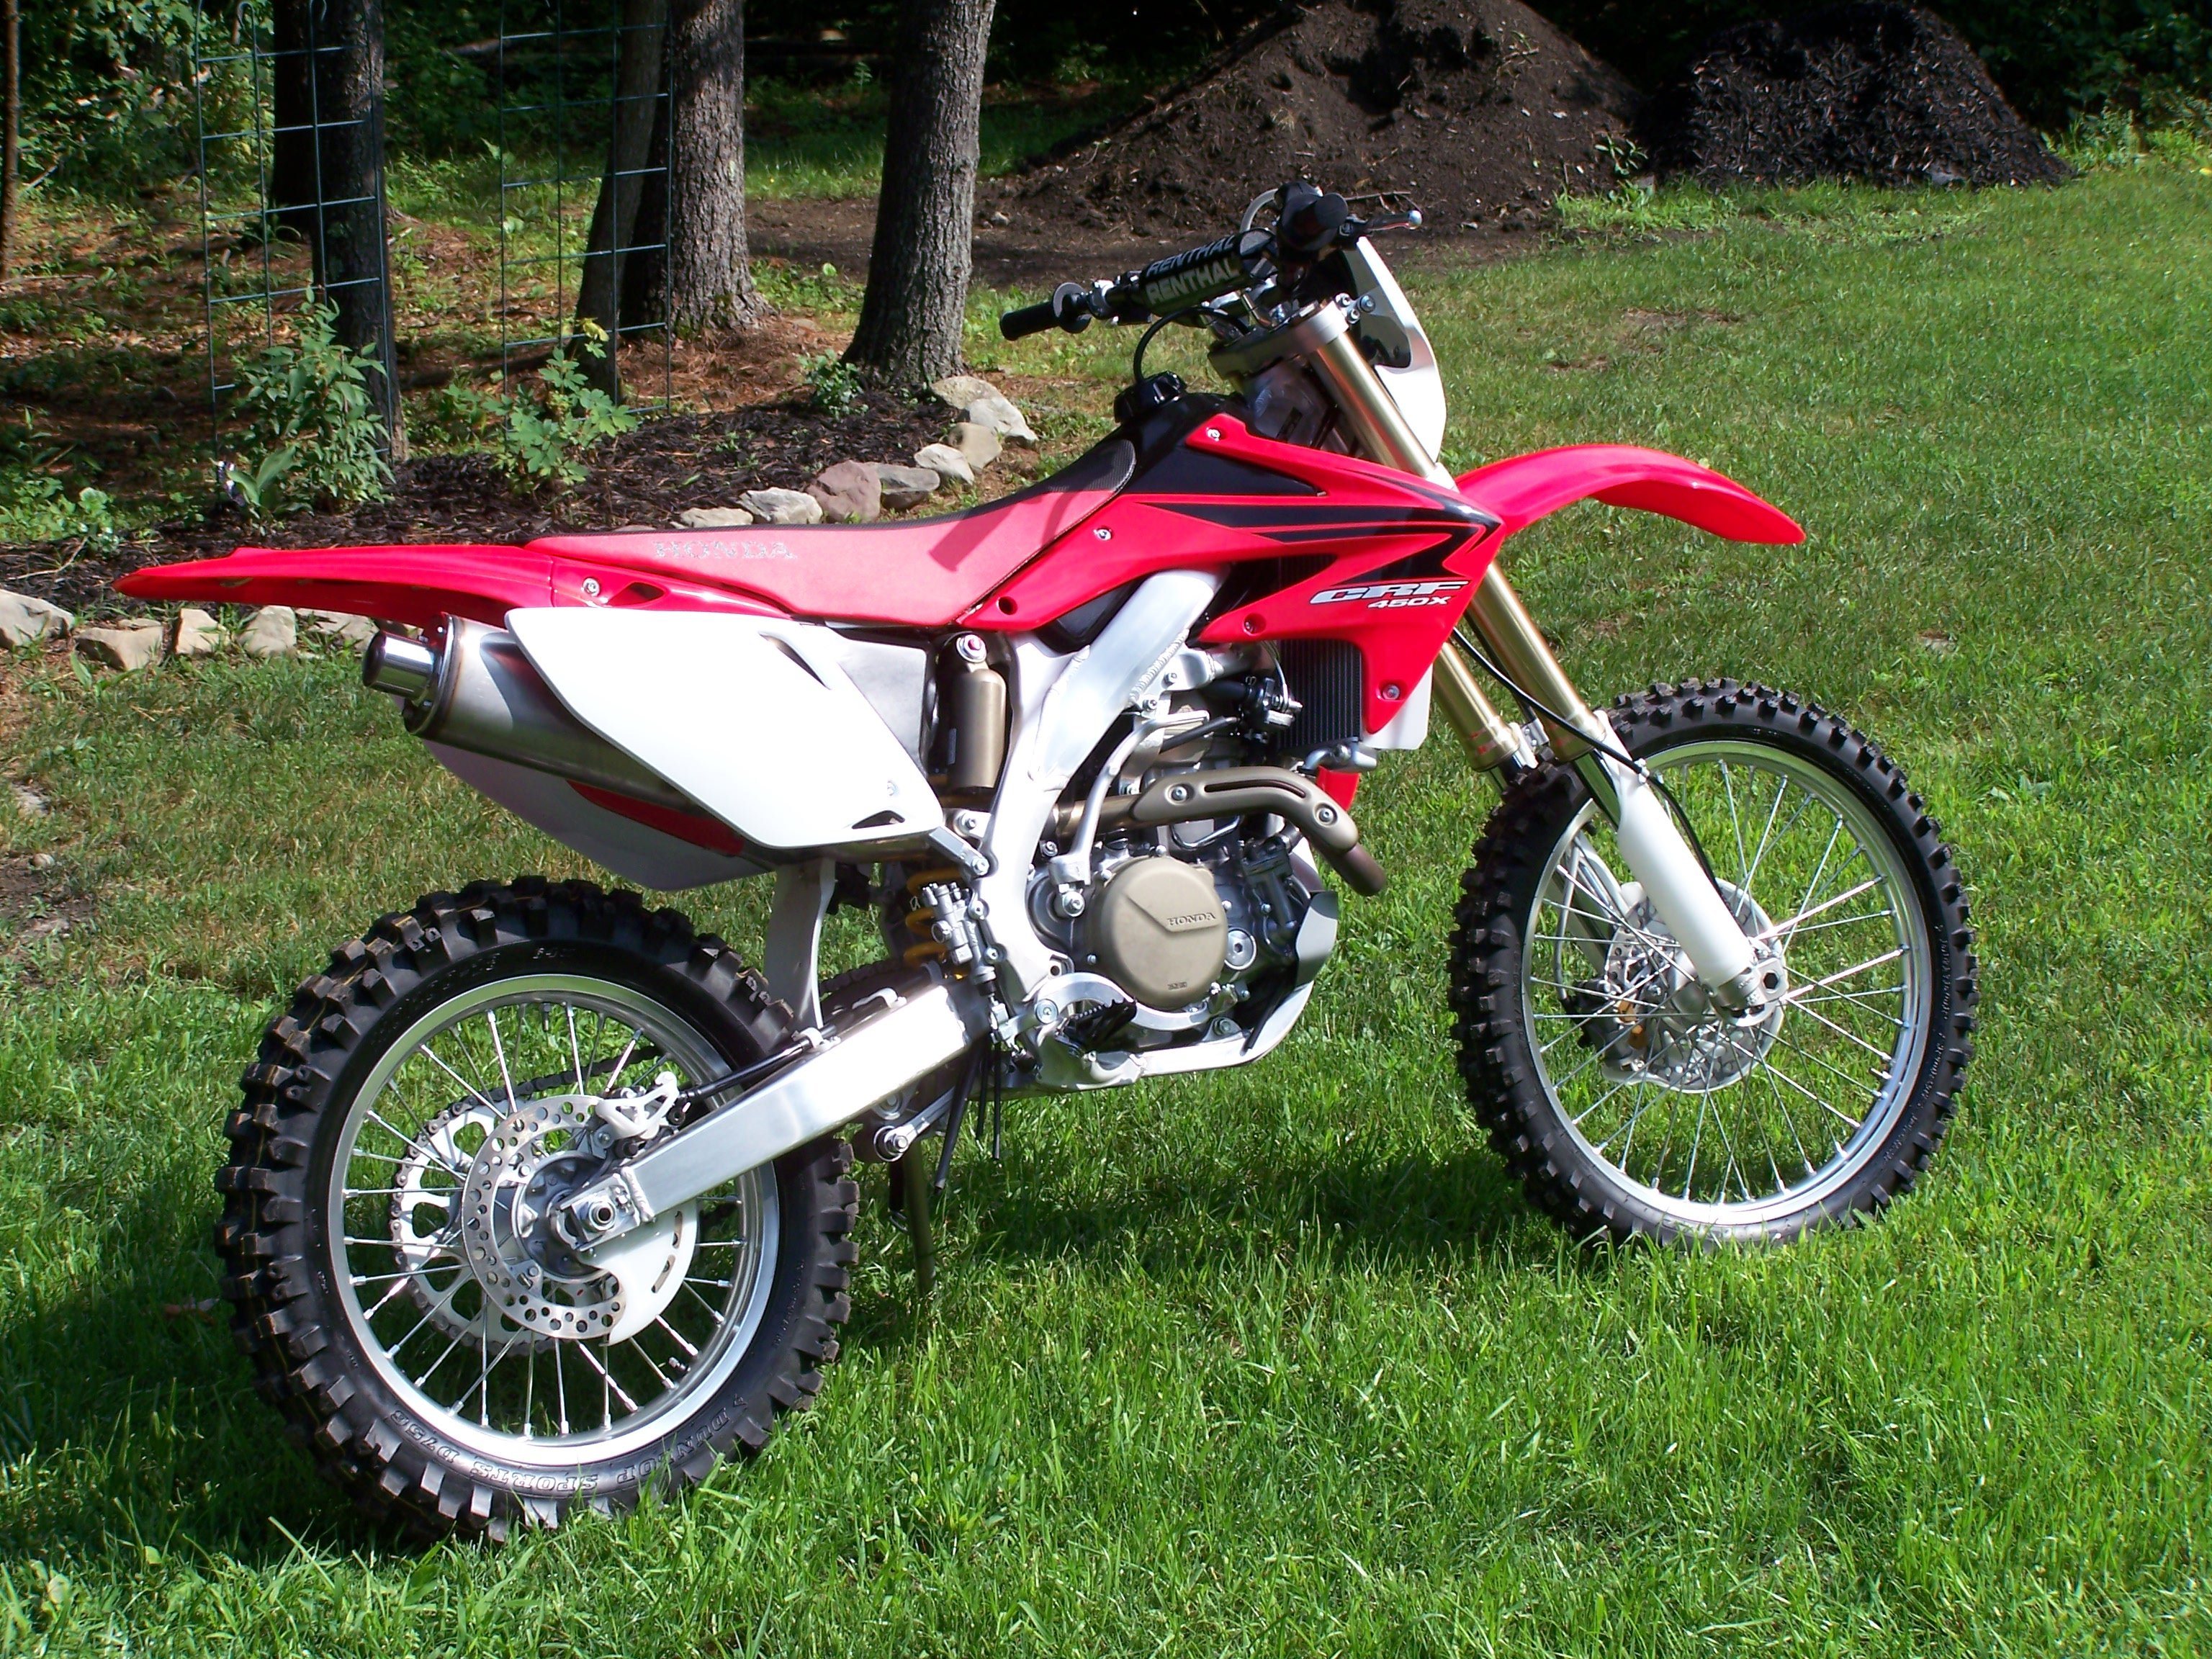 dirt bikes, getting back into this spring - ArcticChat.com - Arctic Cat Forum